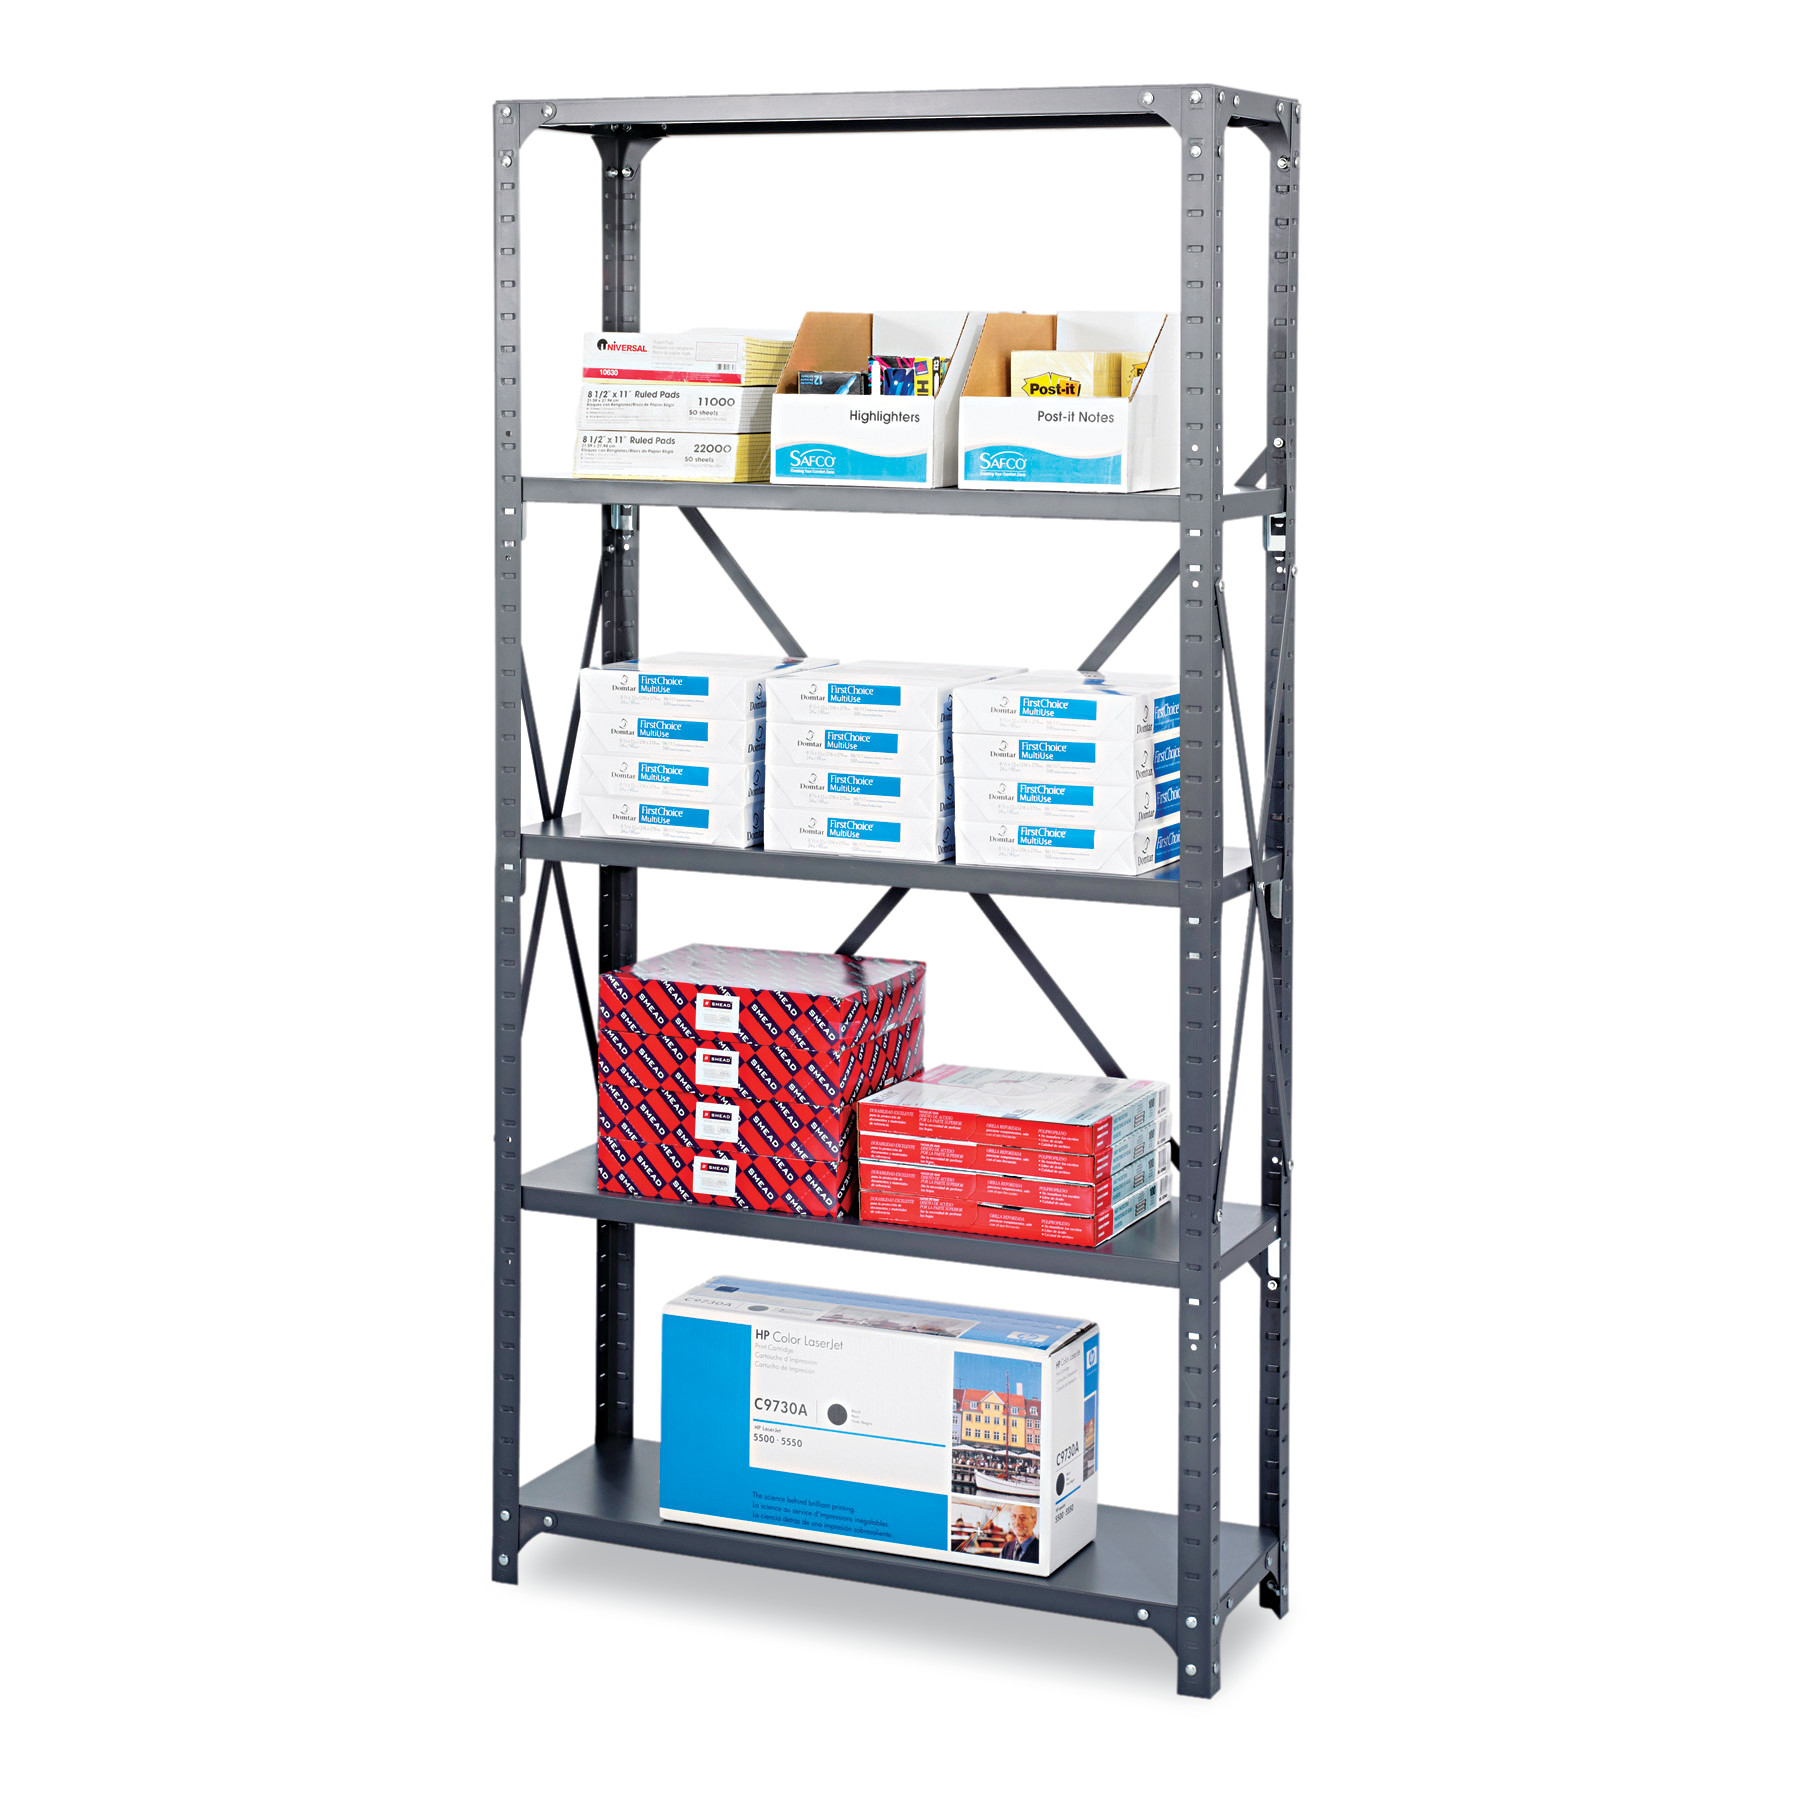 Safco Commercial Steel Shelving Unit, Six-Shelf, 36w x 18d x 75h, Dark Gray